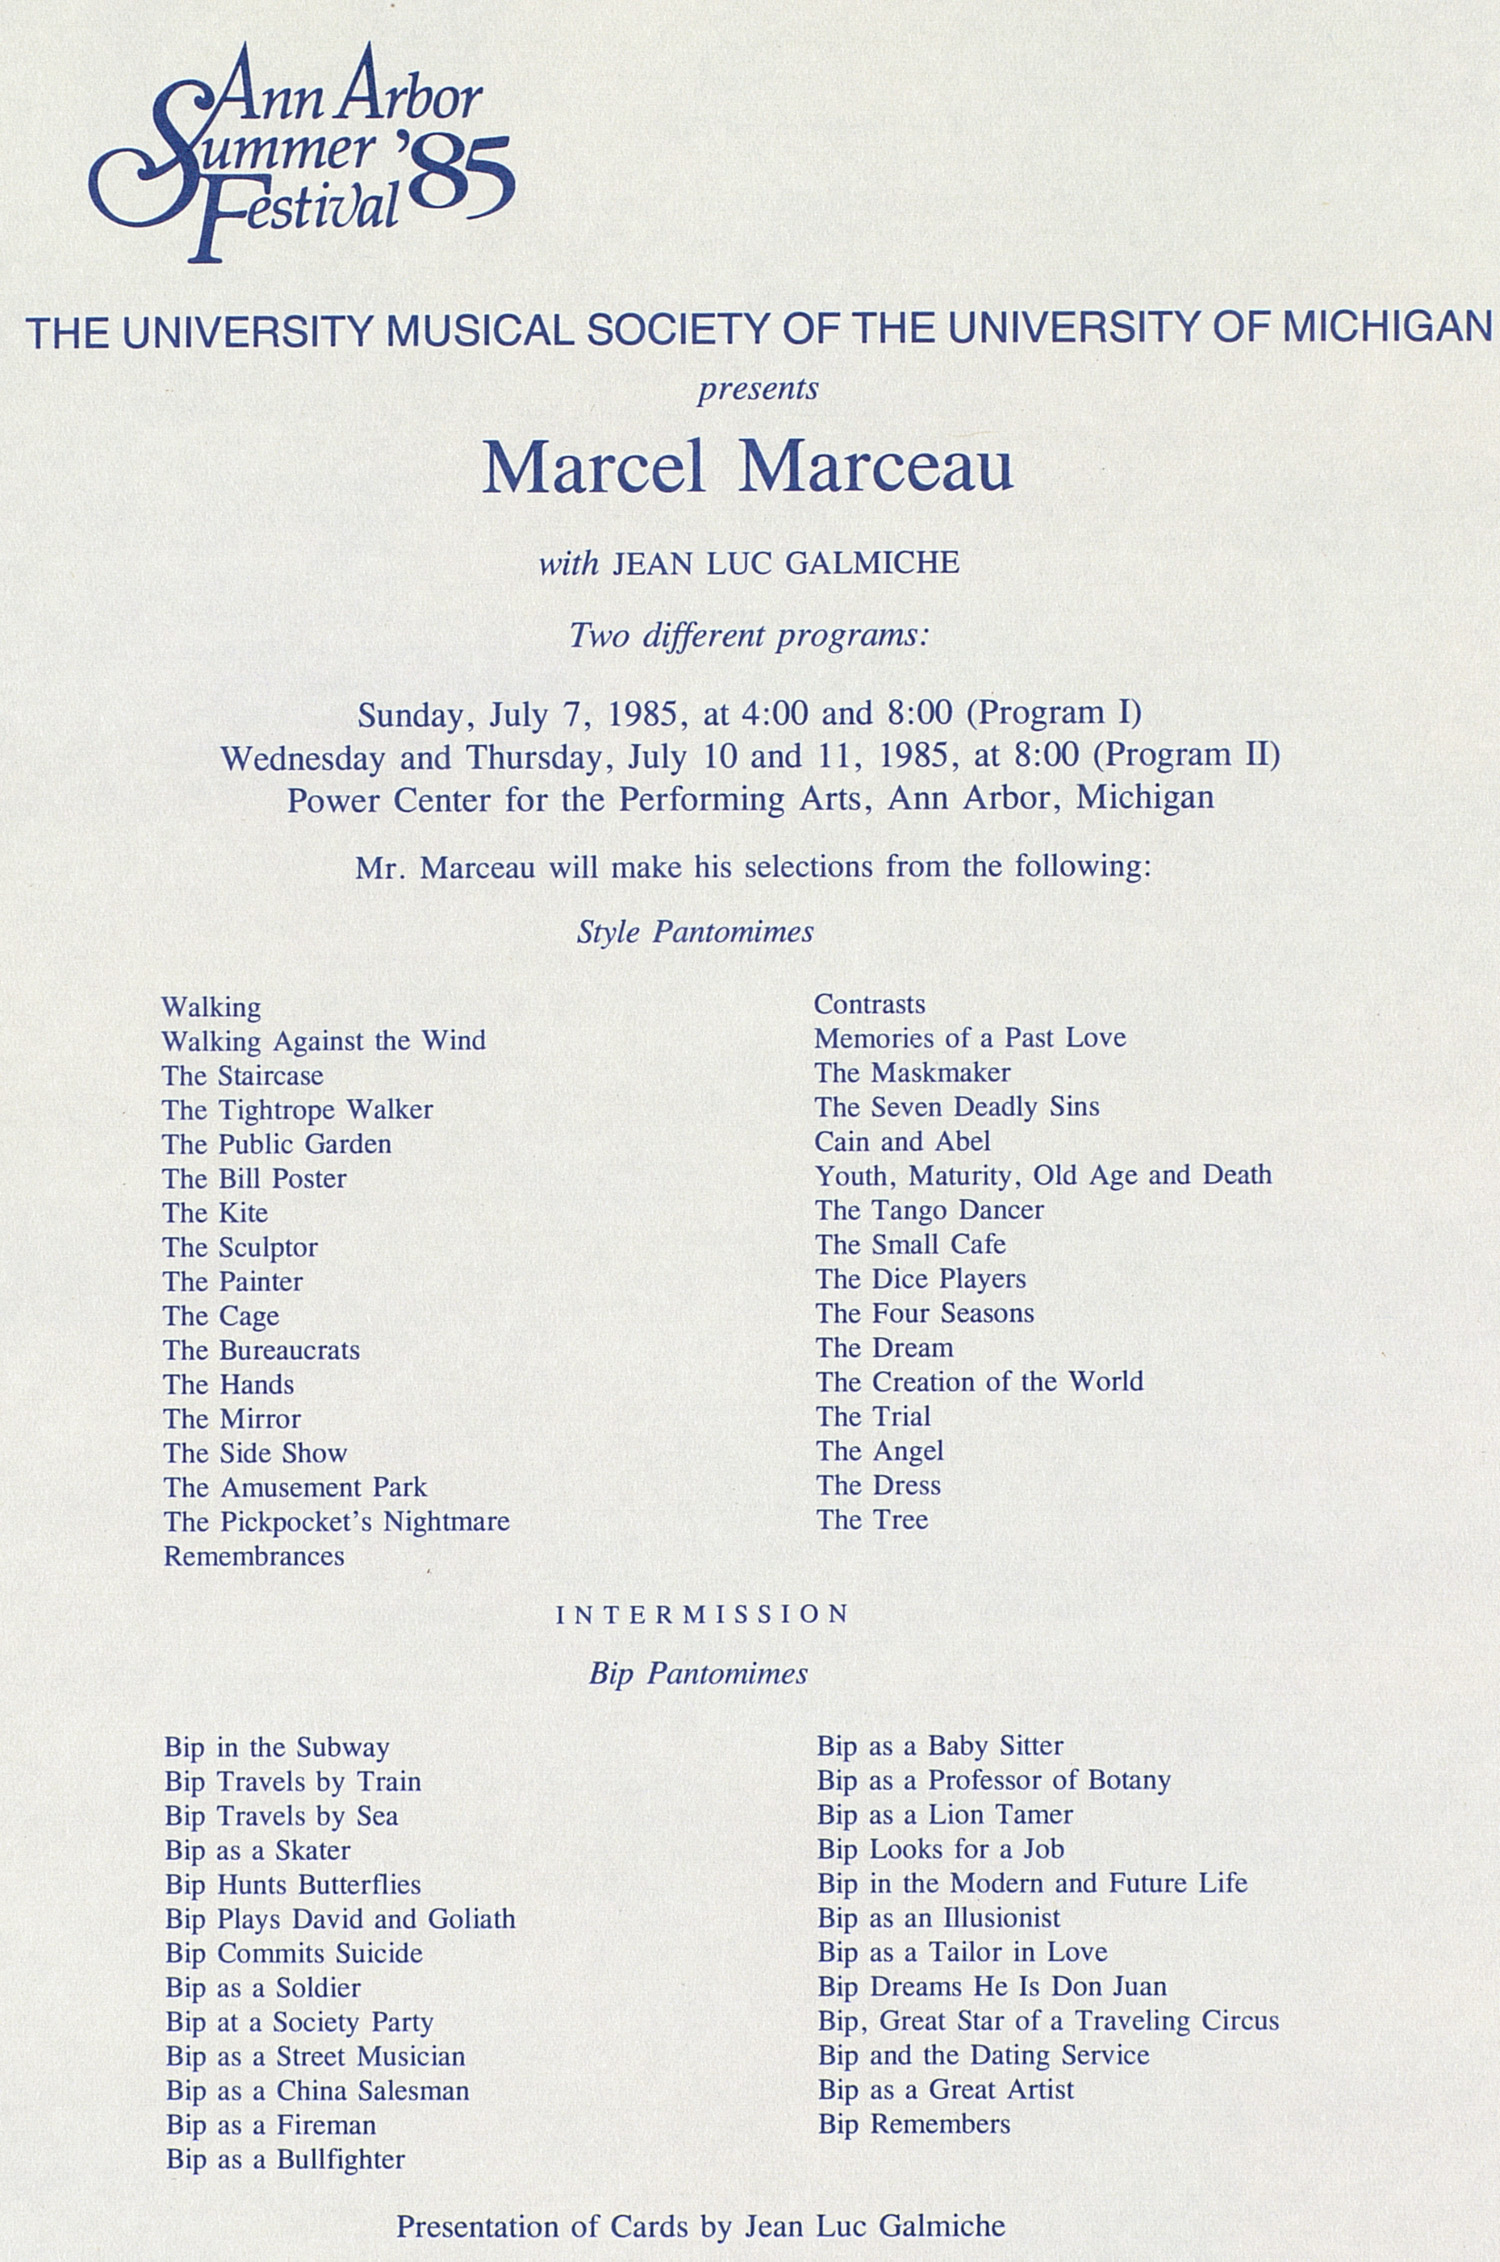 UMS Concert Program, July 7, 10 and 11, 1985: Ann Arbor Summer '85 Festival -- Marcel Marceau image